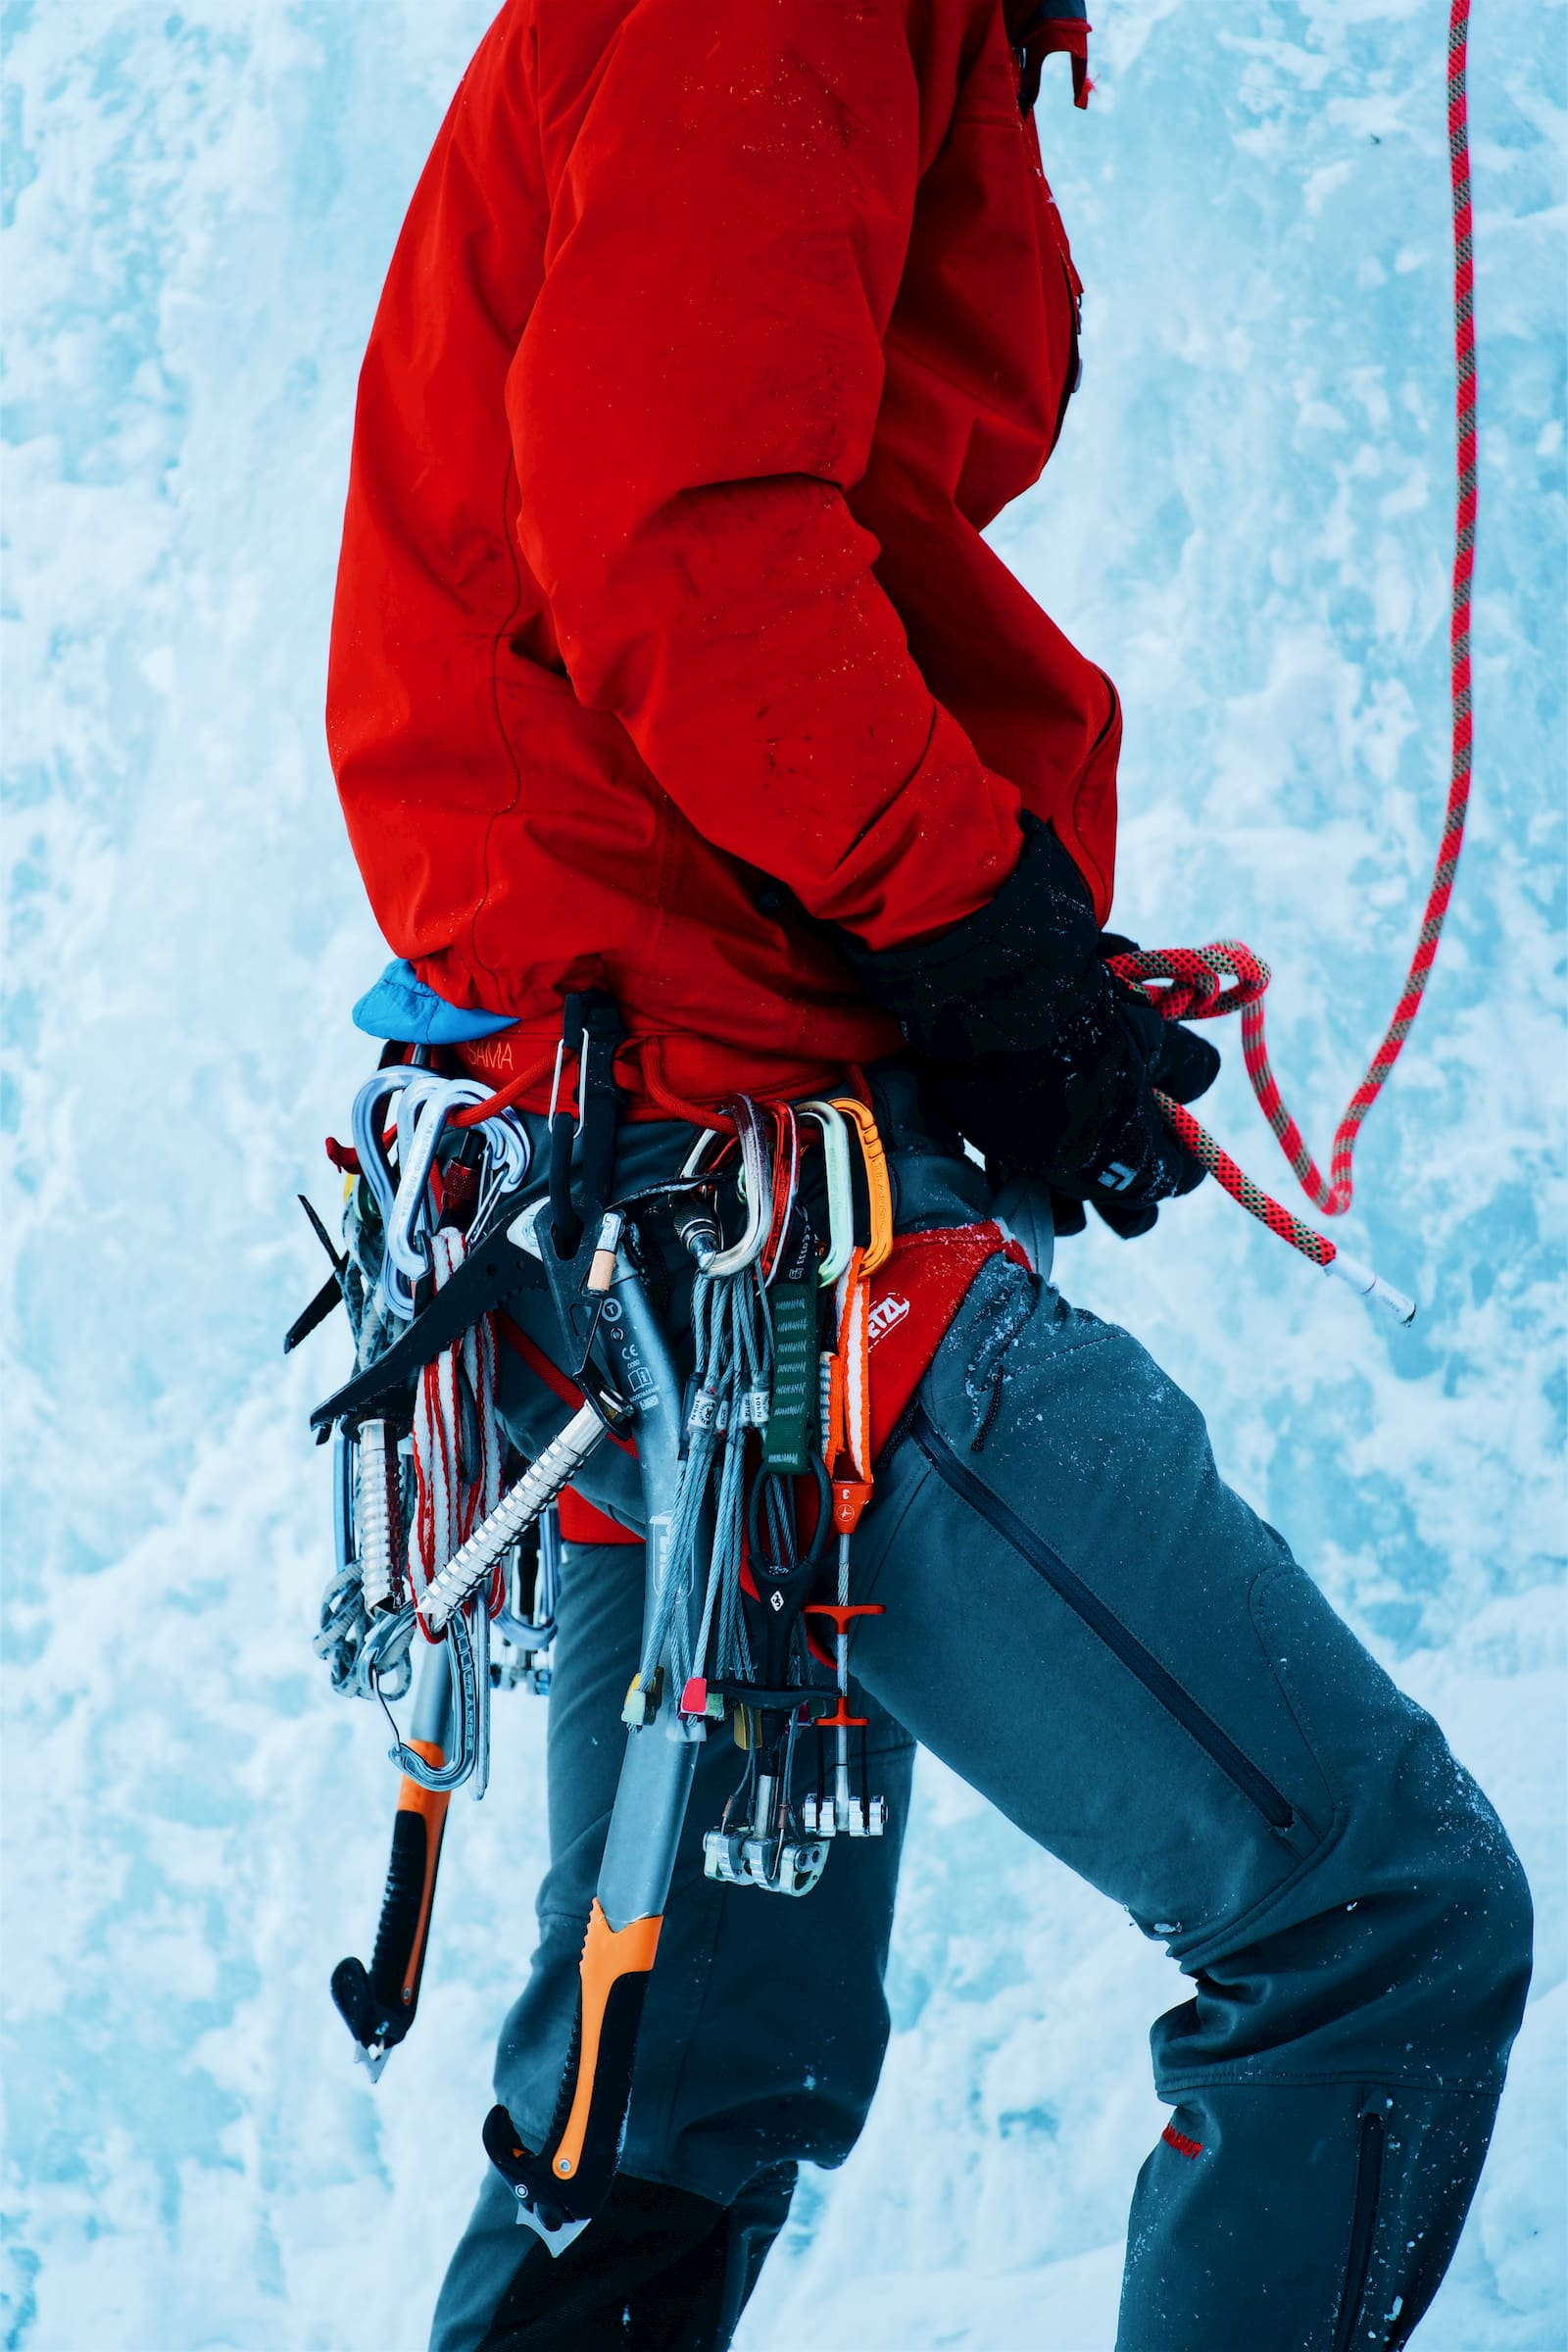 Ice climber with tons of trad gear, quick draws, and ice axes on their harness.